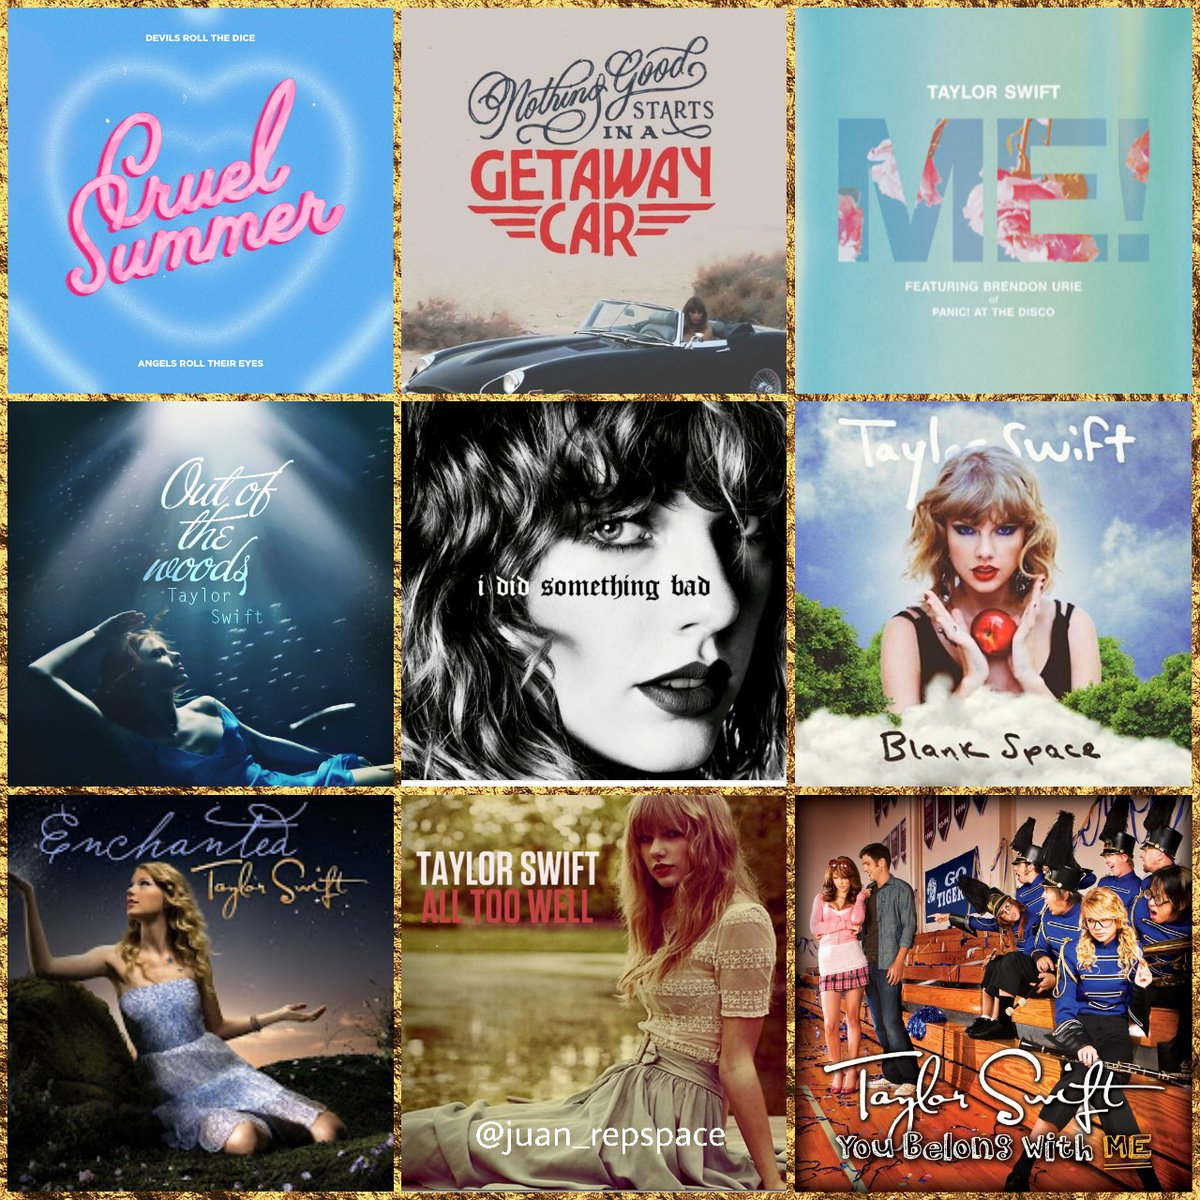 These 9 Taylor Swift songs are all burning, Which 3 are you saving?  pic.twitter.com/M04X1Dzhh2